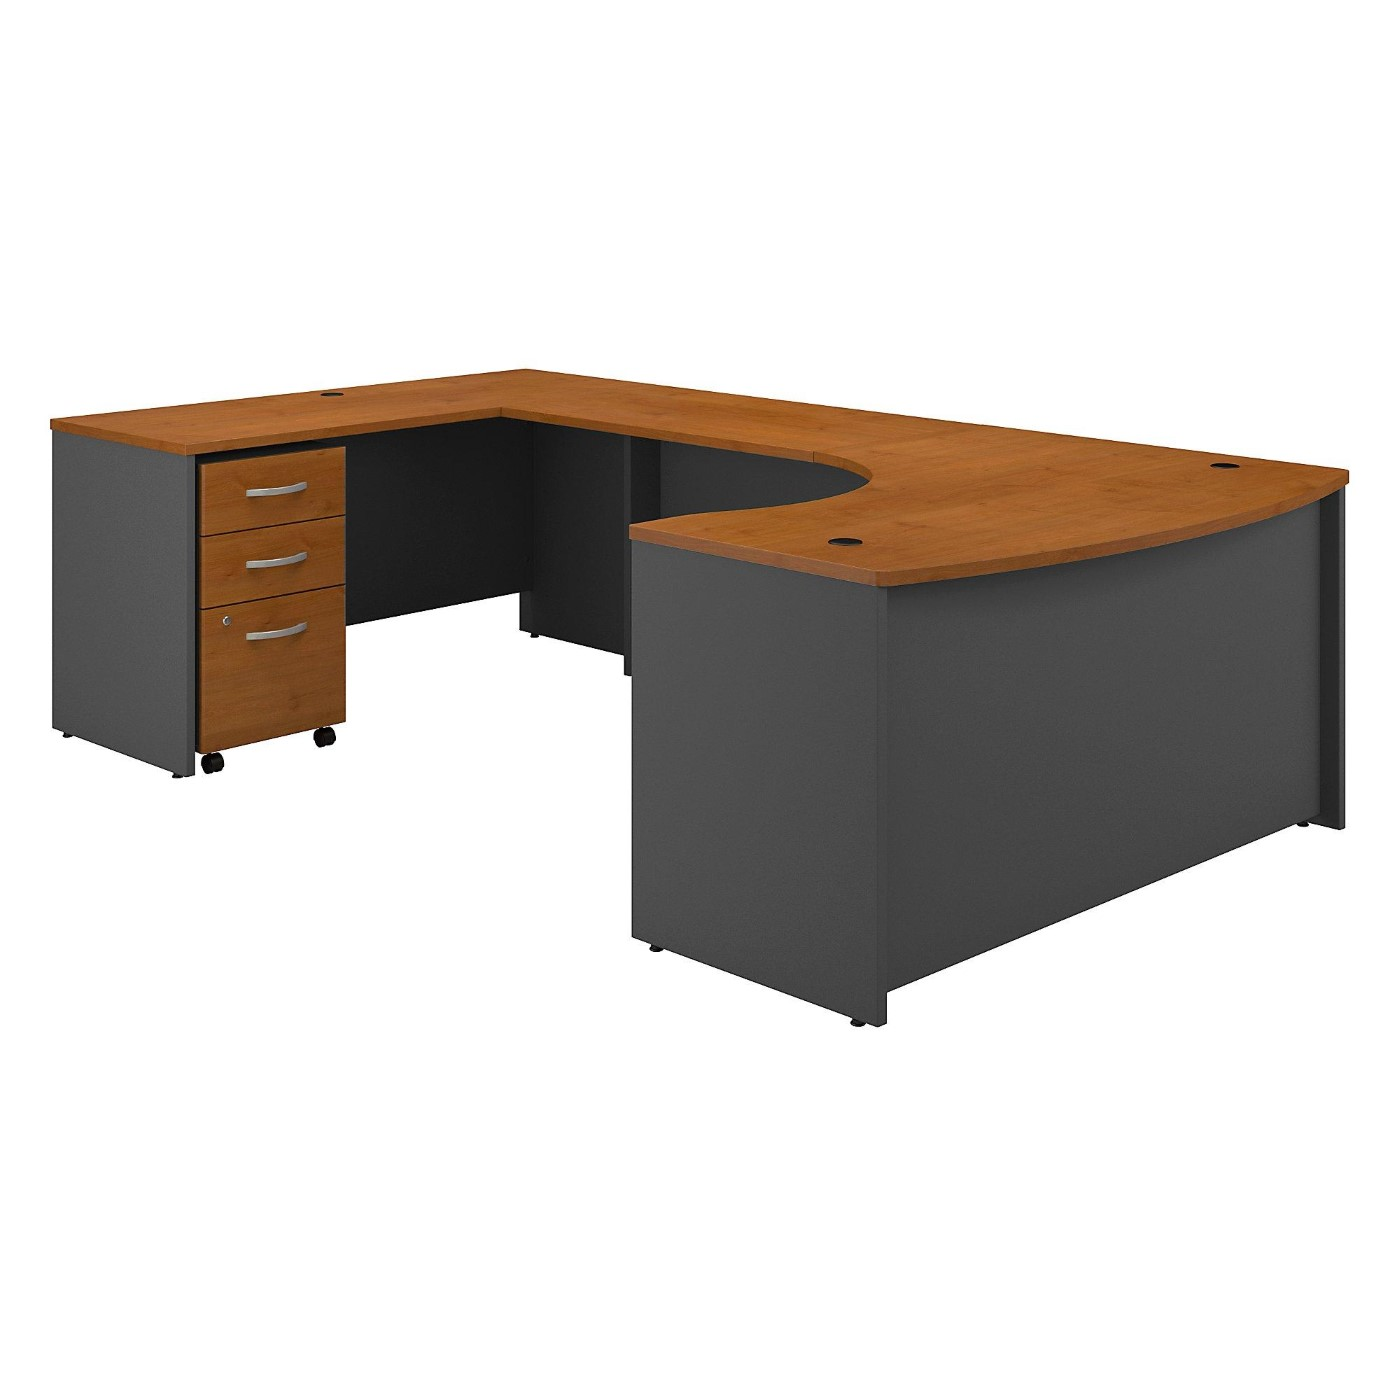 </b></font><b>BUSH BUSINESS FURNITURE SERIES C 60W RIGHT HANDED BOW FRONT U SHAPED DESK WITH MOBILE FILE CABINET. FREE SHIPPING</b></font>  VIDEO BELOW. </b></font></b>